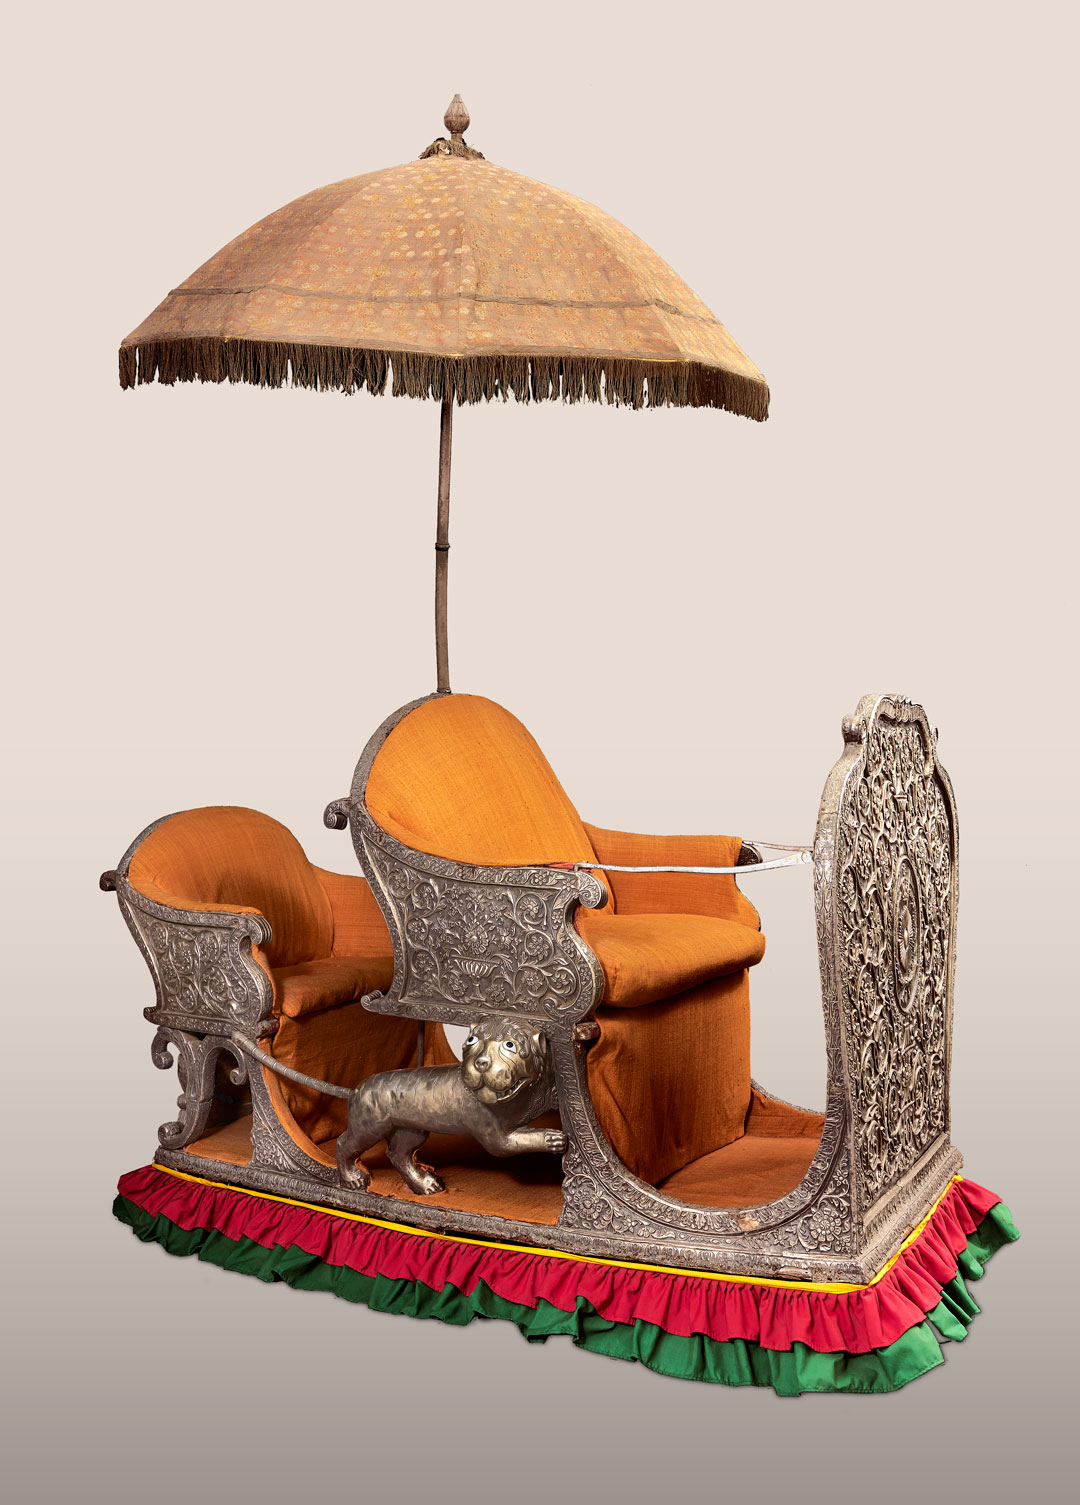 Howdah with Chattr (Elephant Seat with Parasol), early 19th century